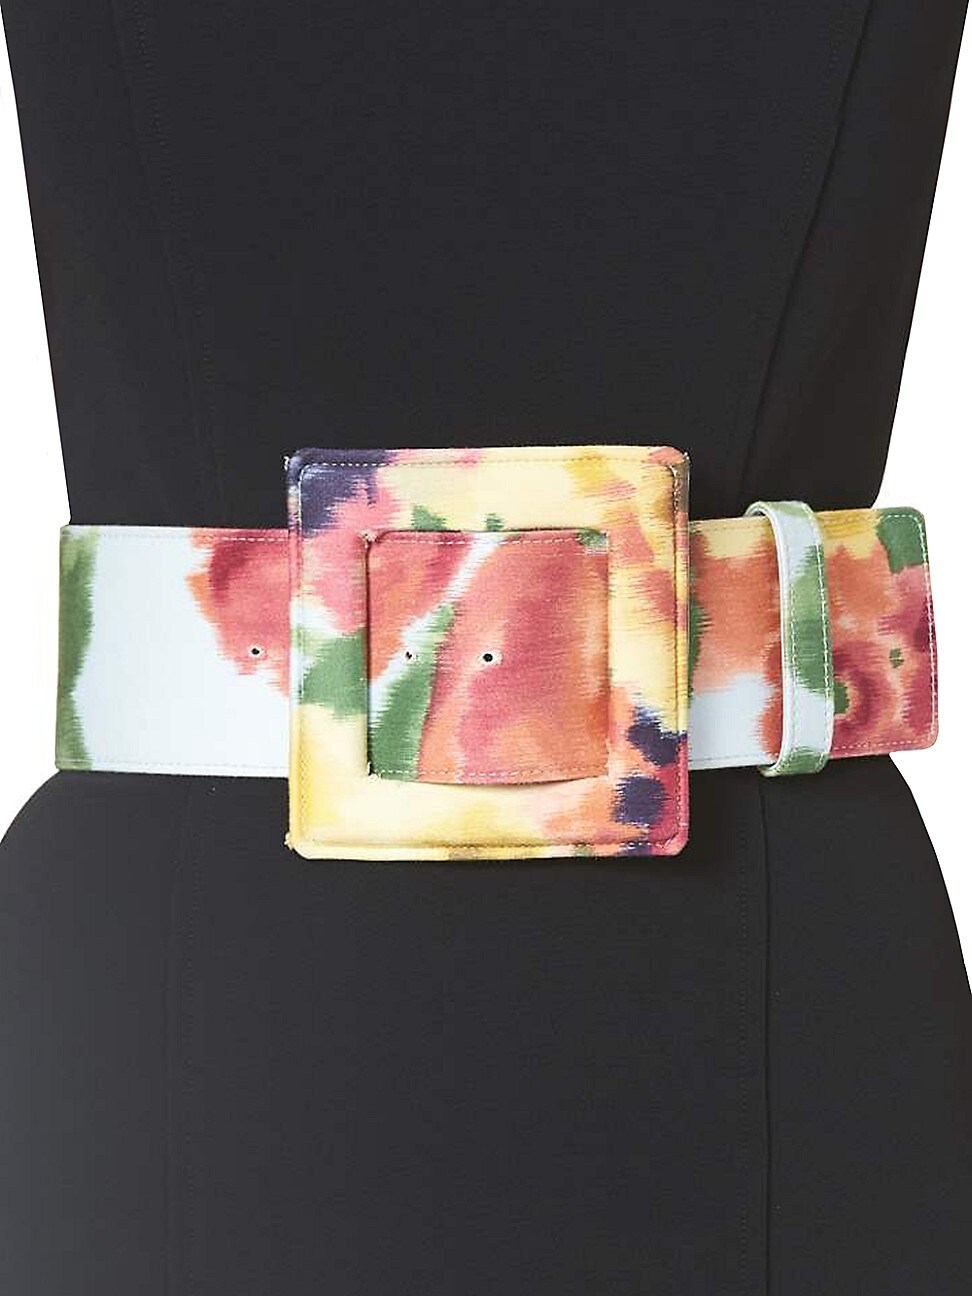 Carolina Herrera WOMEN'S SQUARE BUCKLE FLORAL BELT